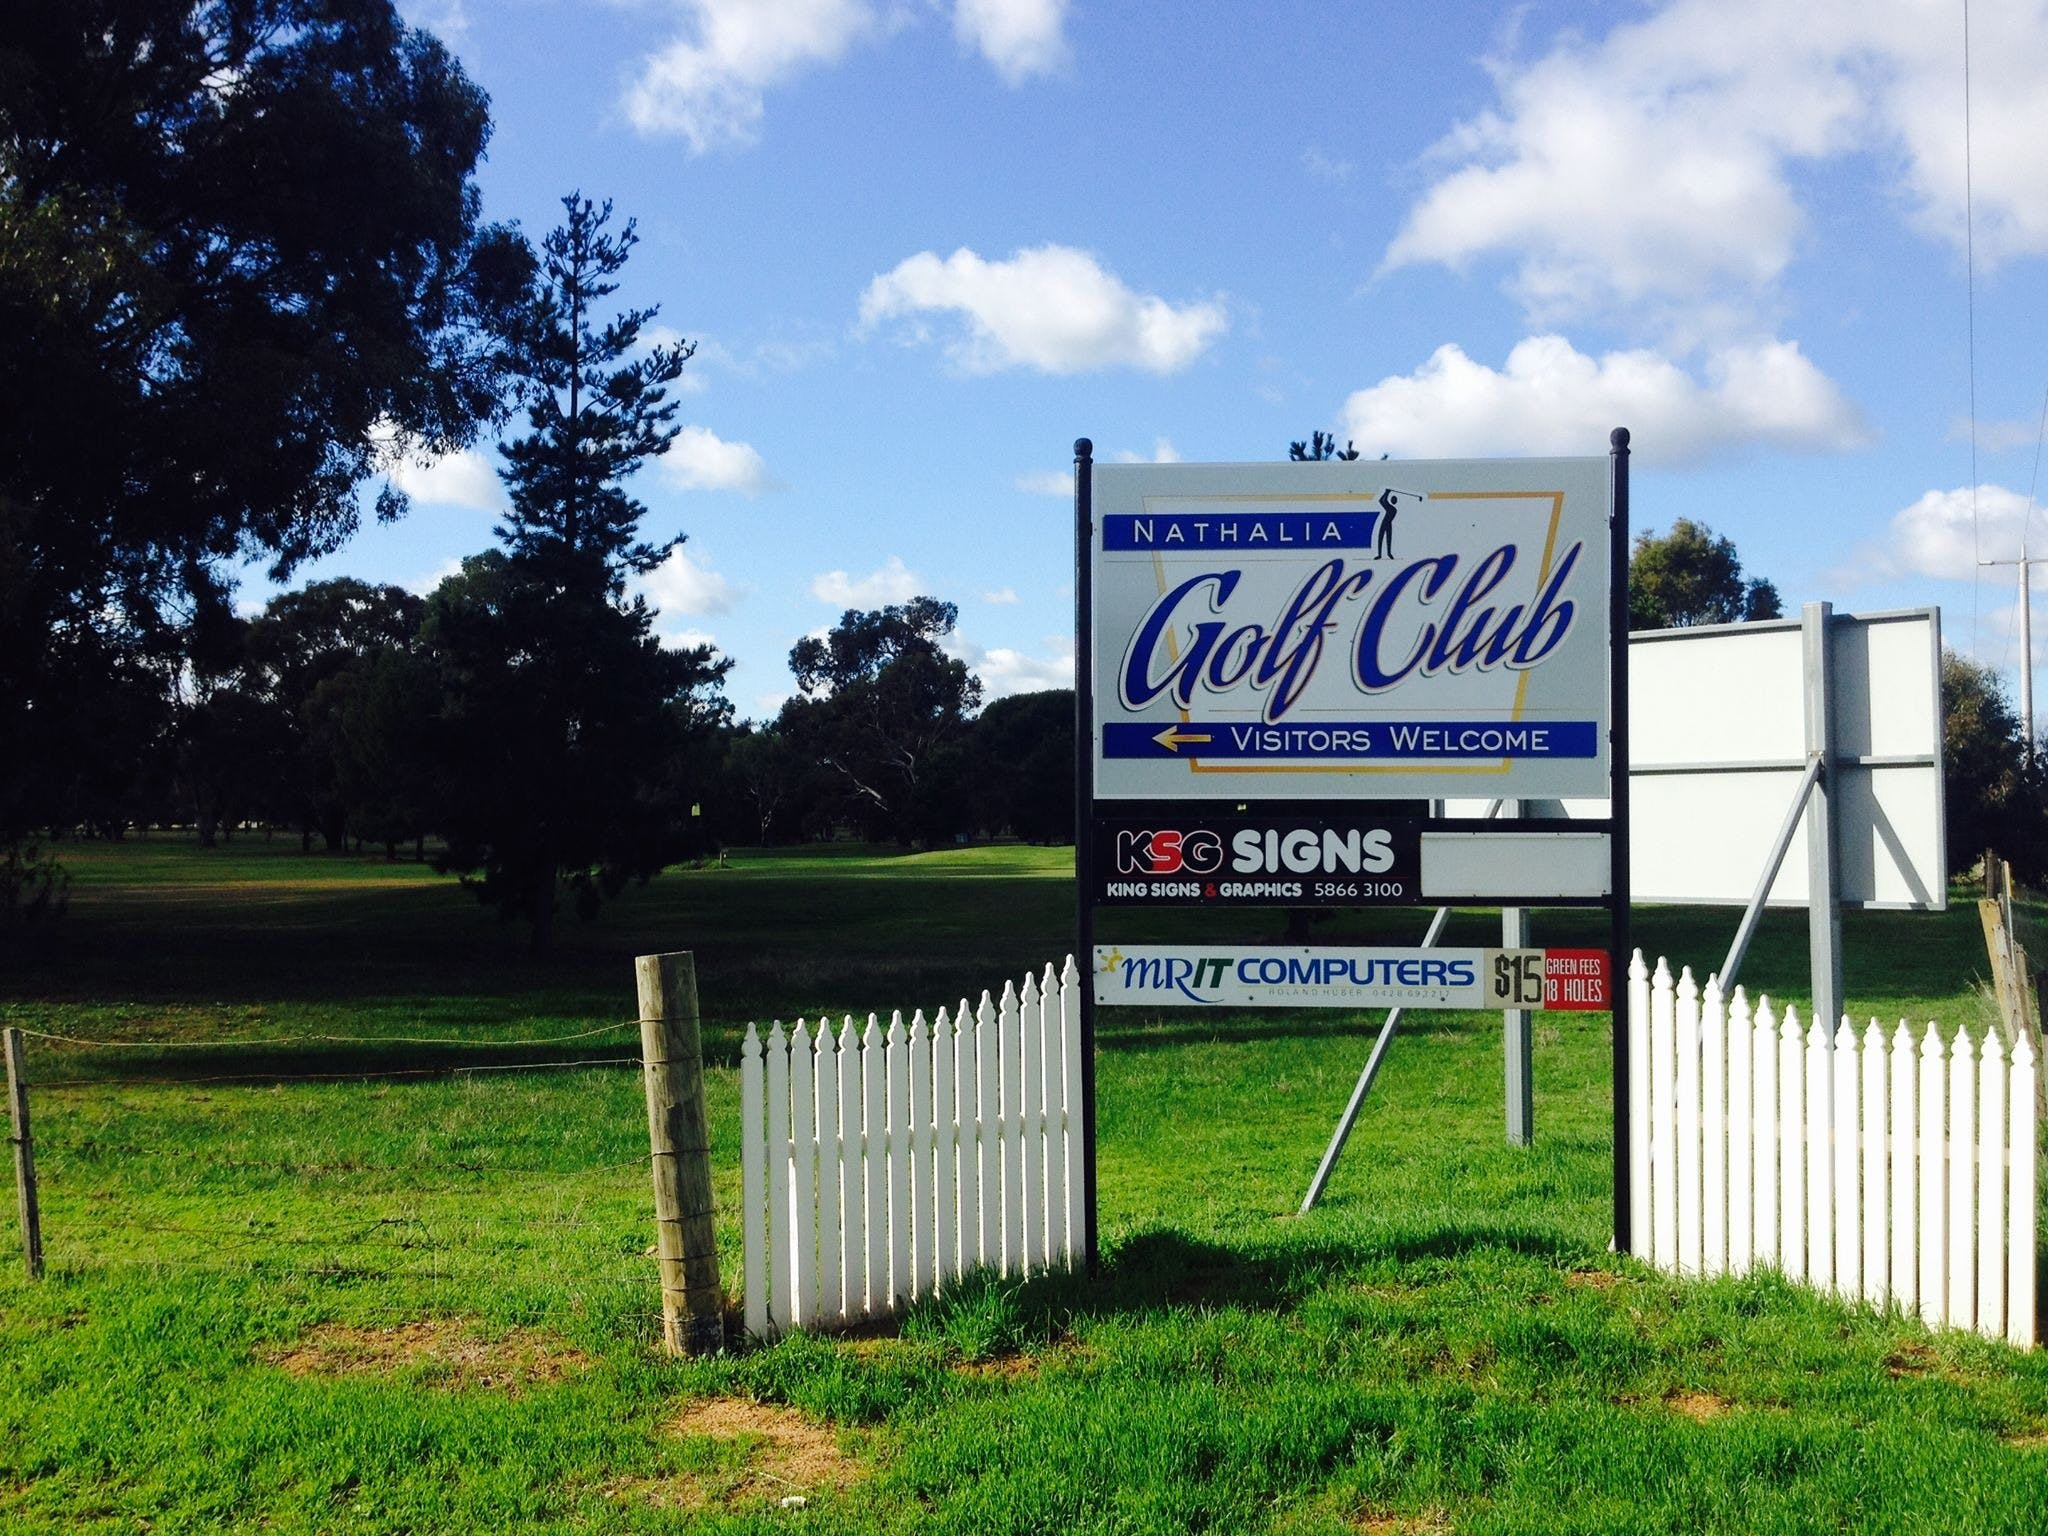 Nathalia Golf Club - Sydney Tourism